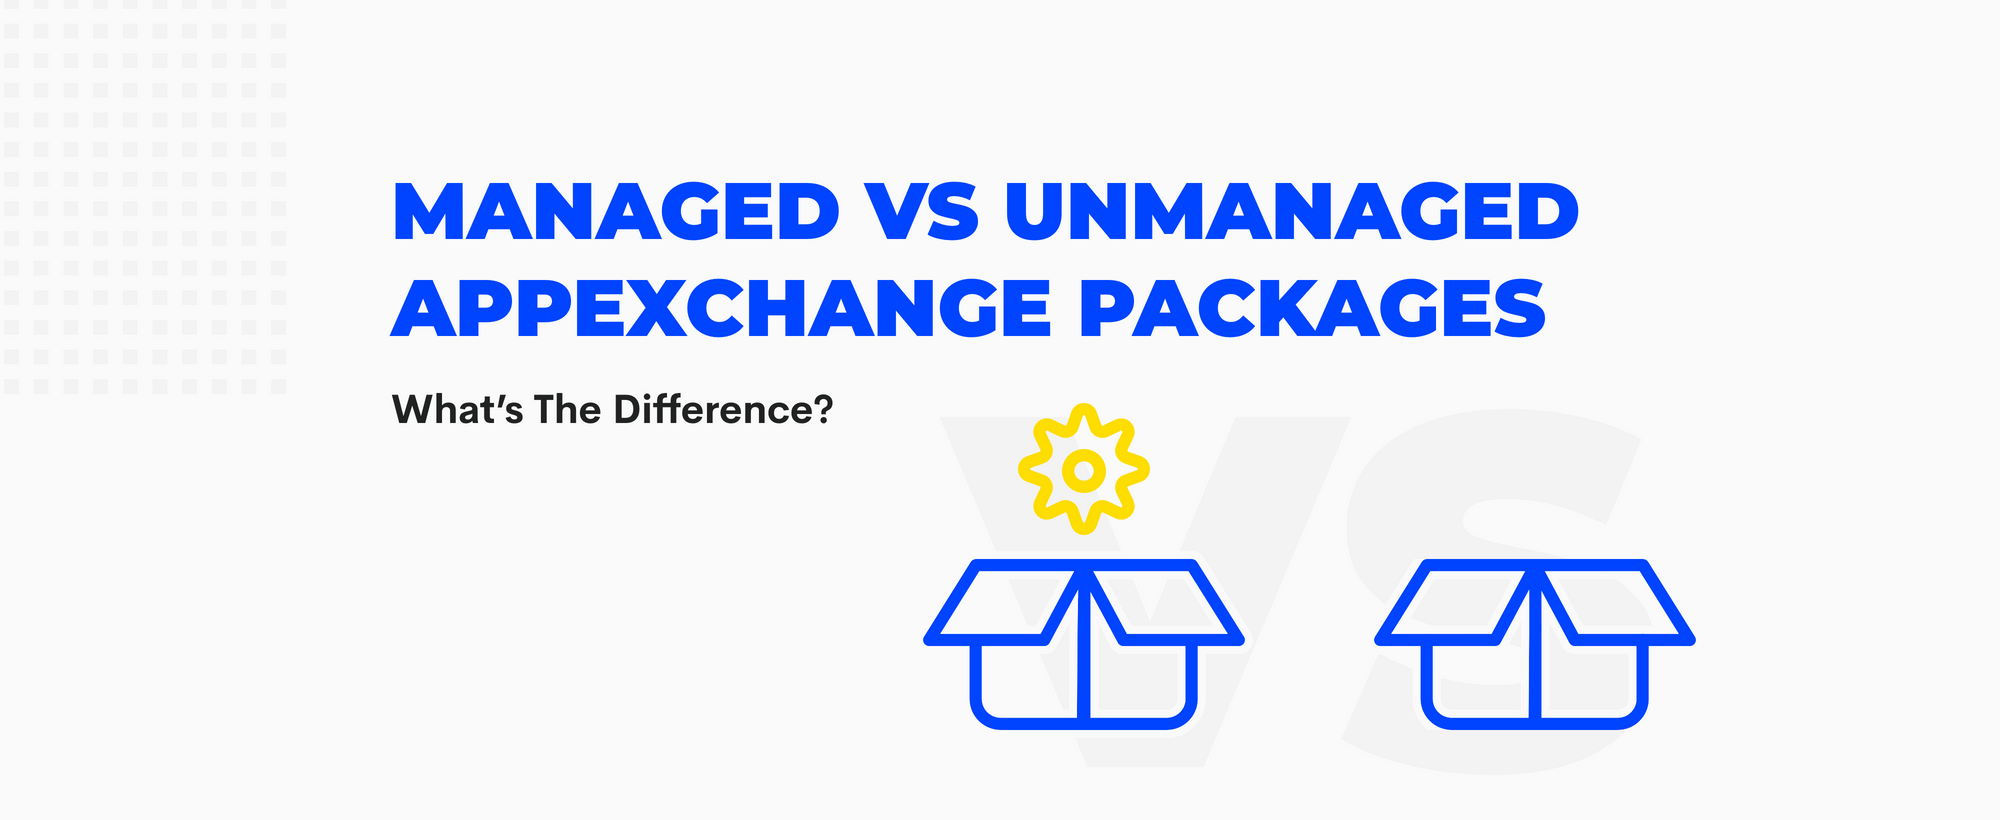 Managed vs Unmanaged AppExchange Packages: What's The Difference